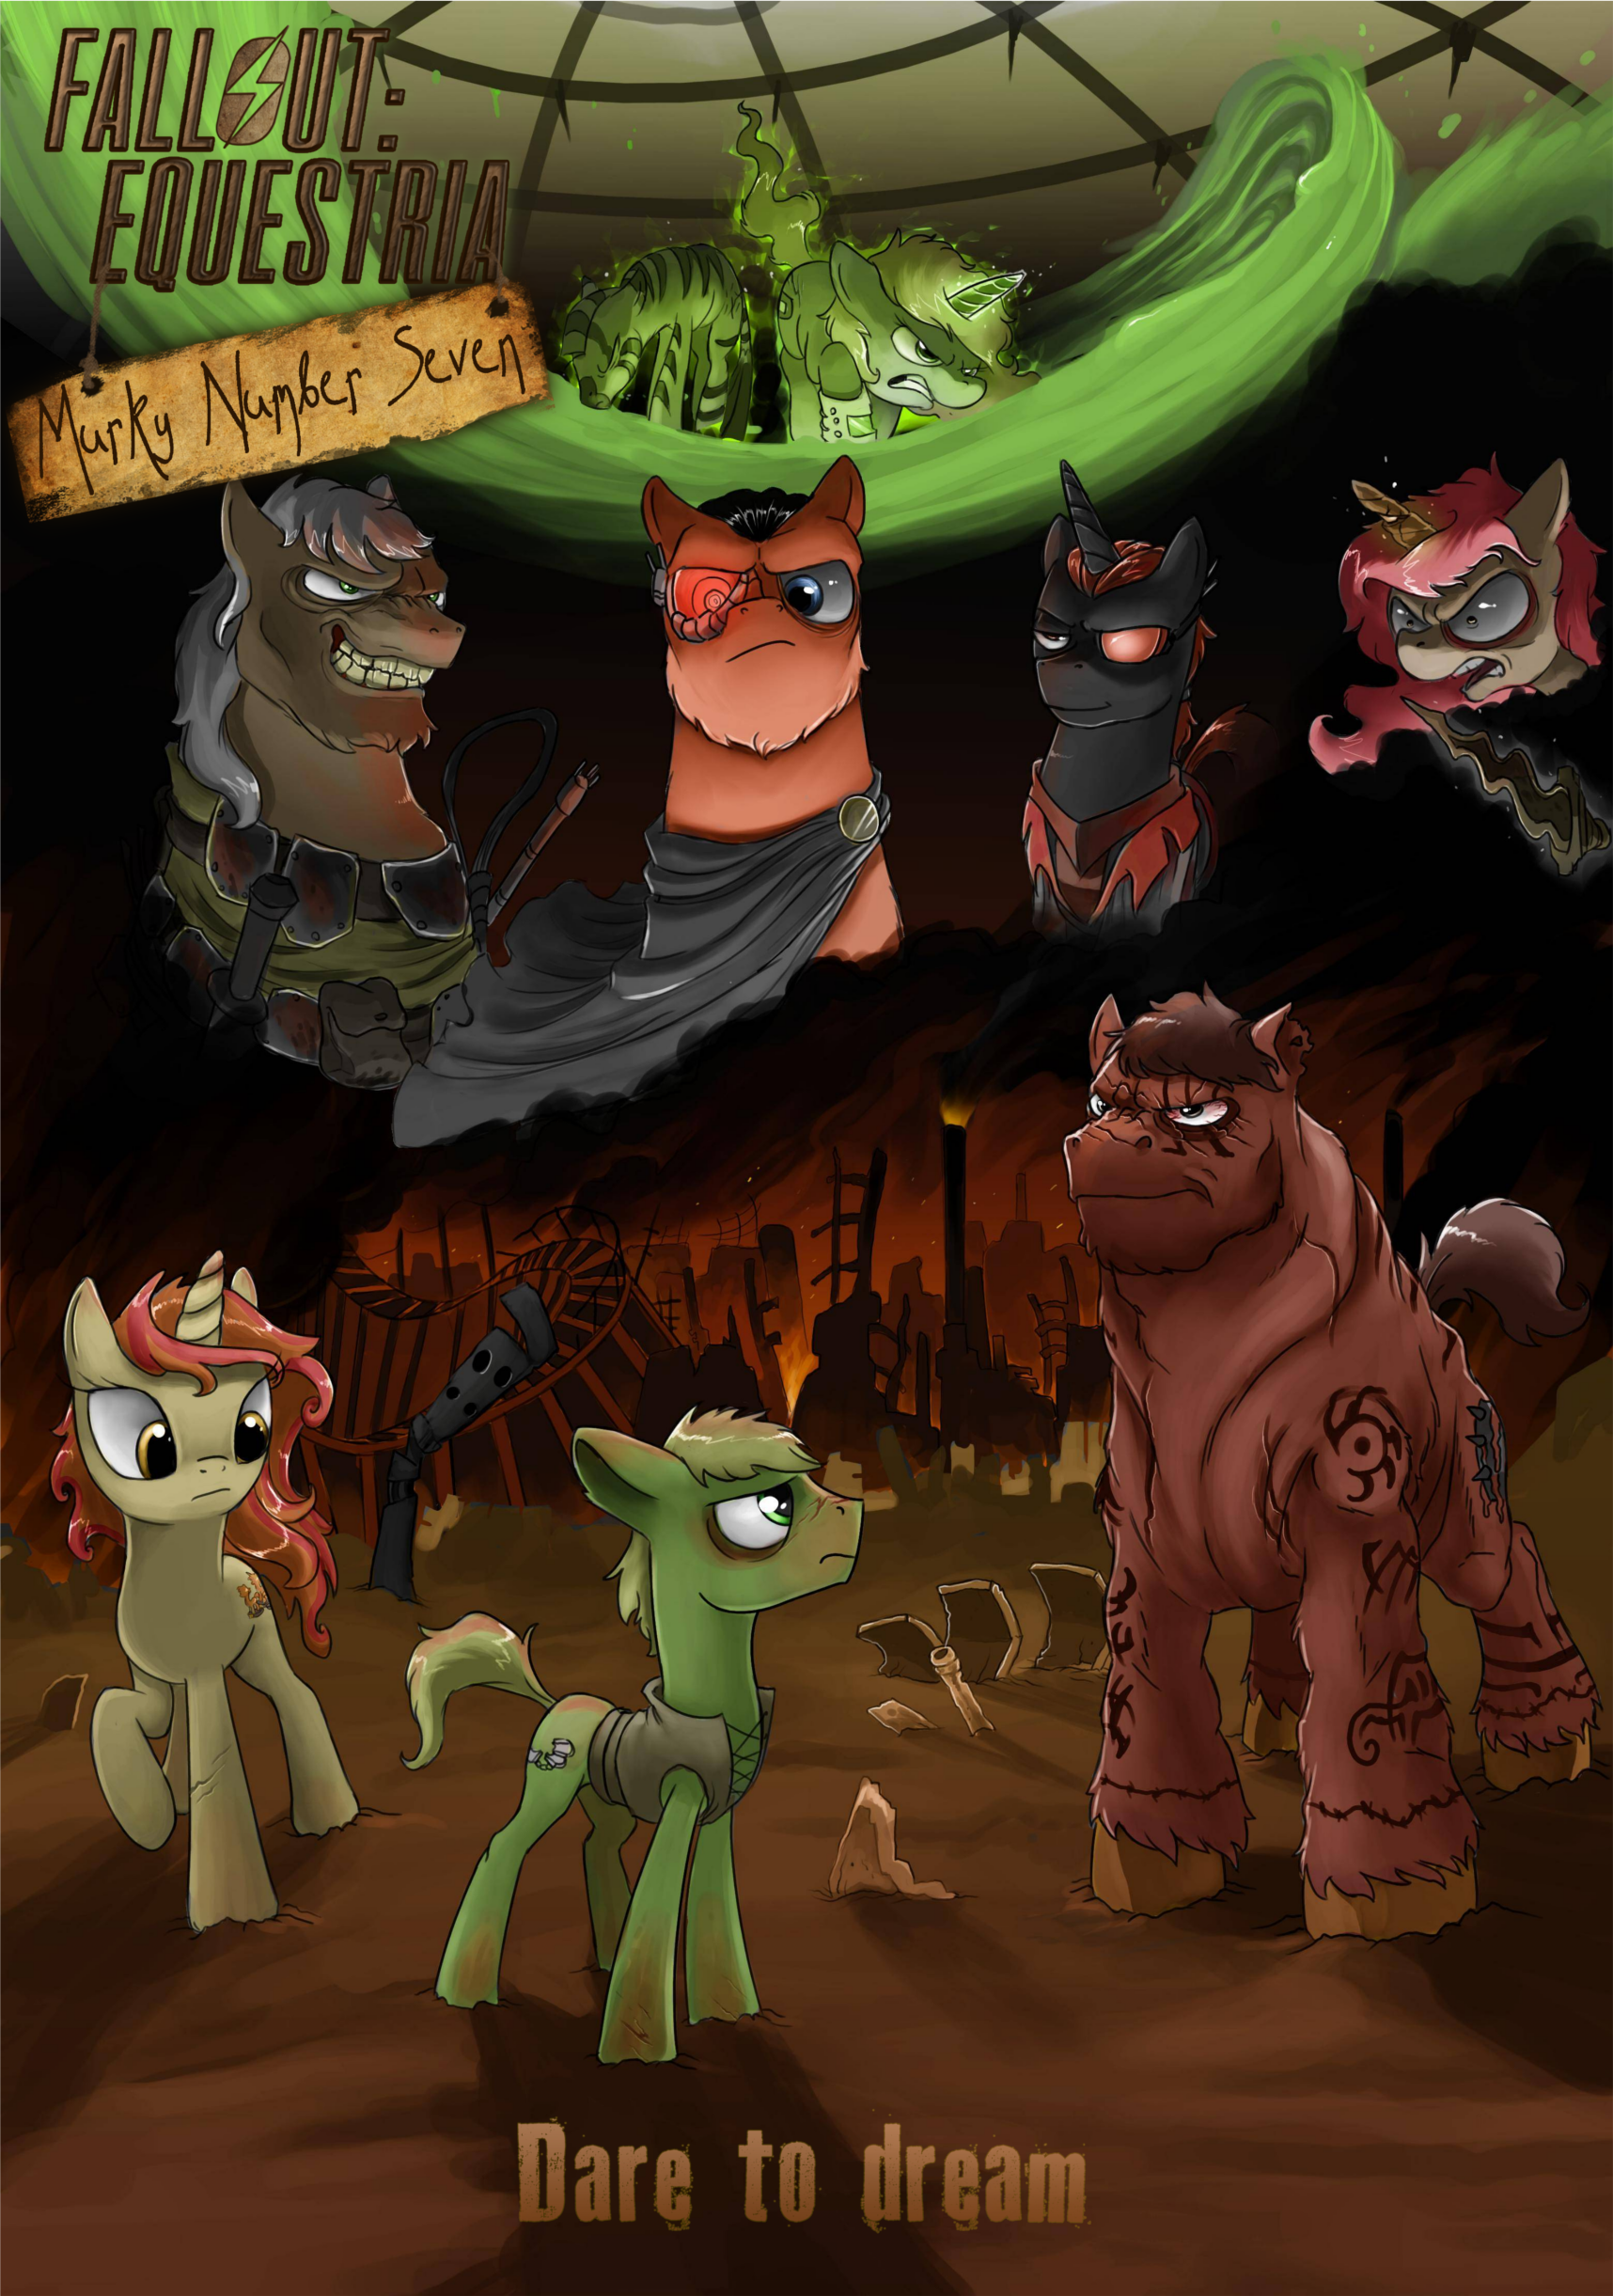 Fallout Equestria Murky Number Seven Fallout